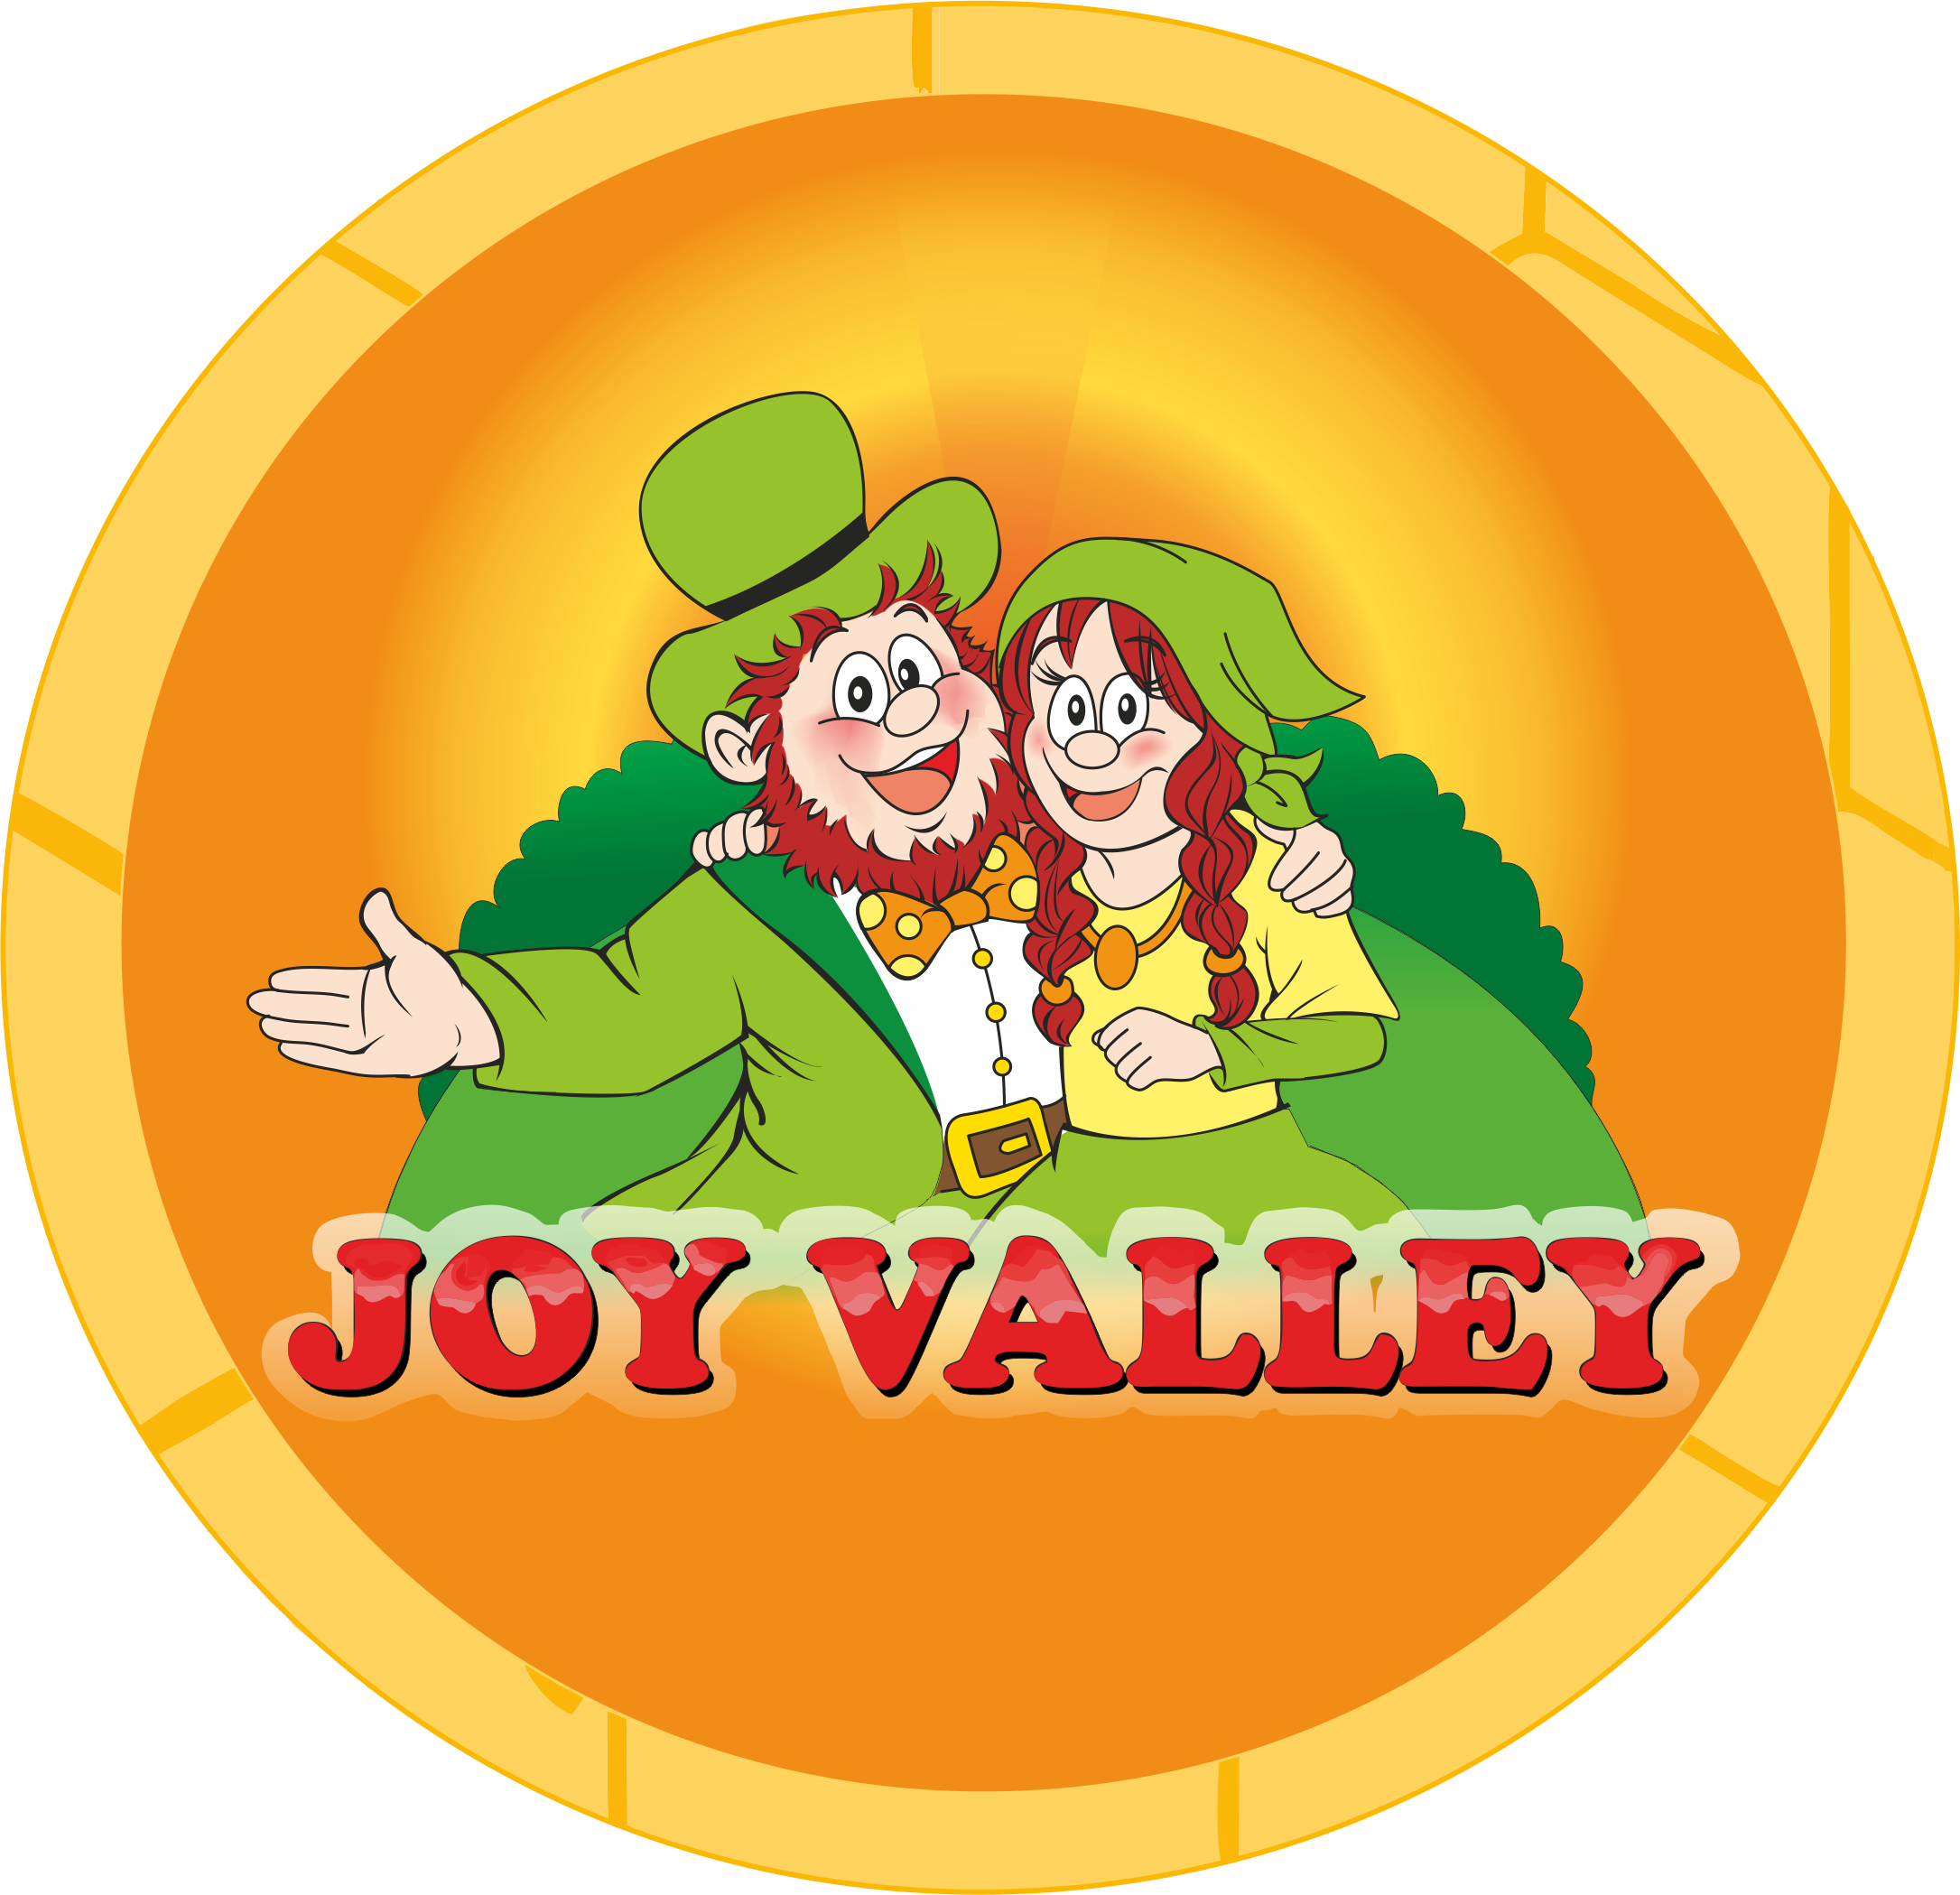 Joy Valley